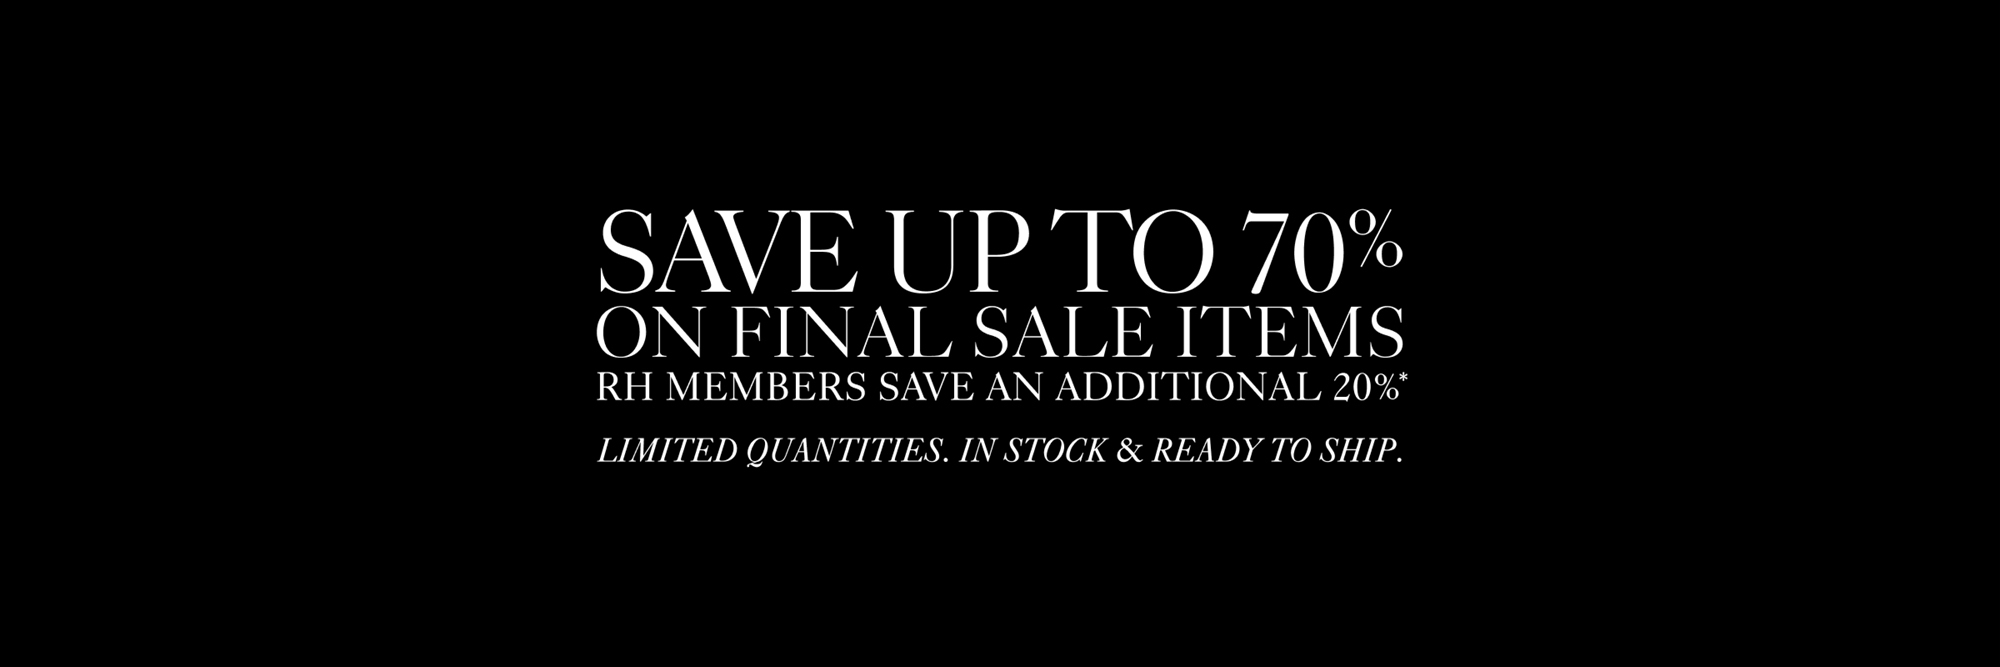 Save up to 70%, RH Members Save An Additional 20%*, In Stock & Ready to Ship